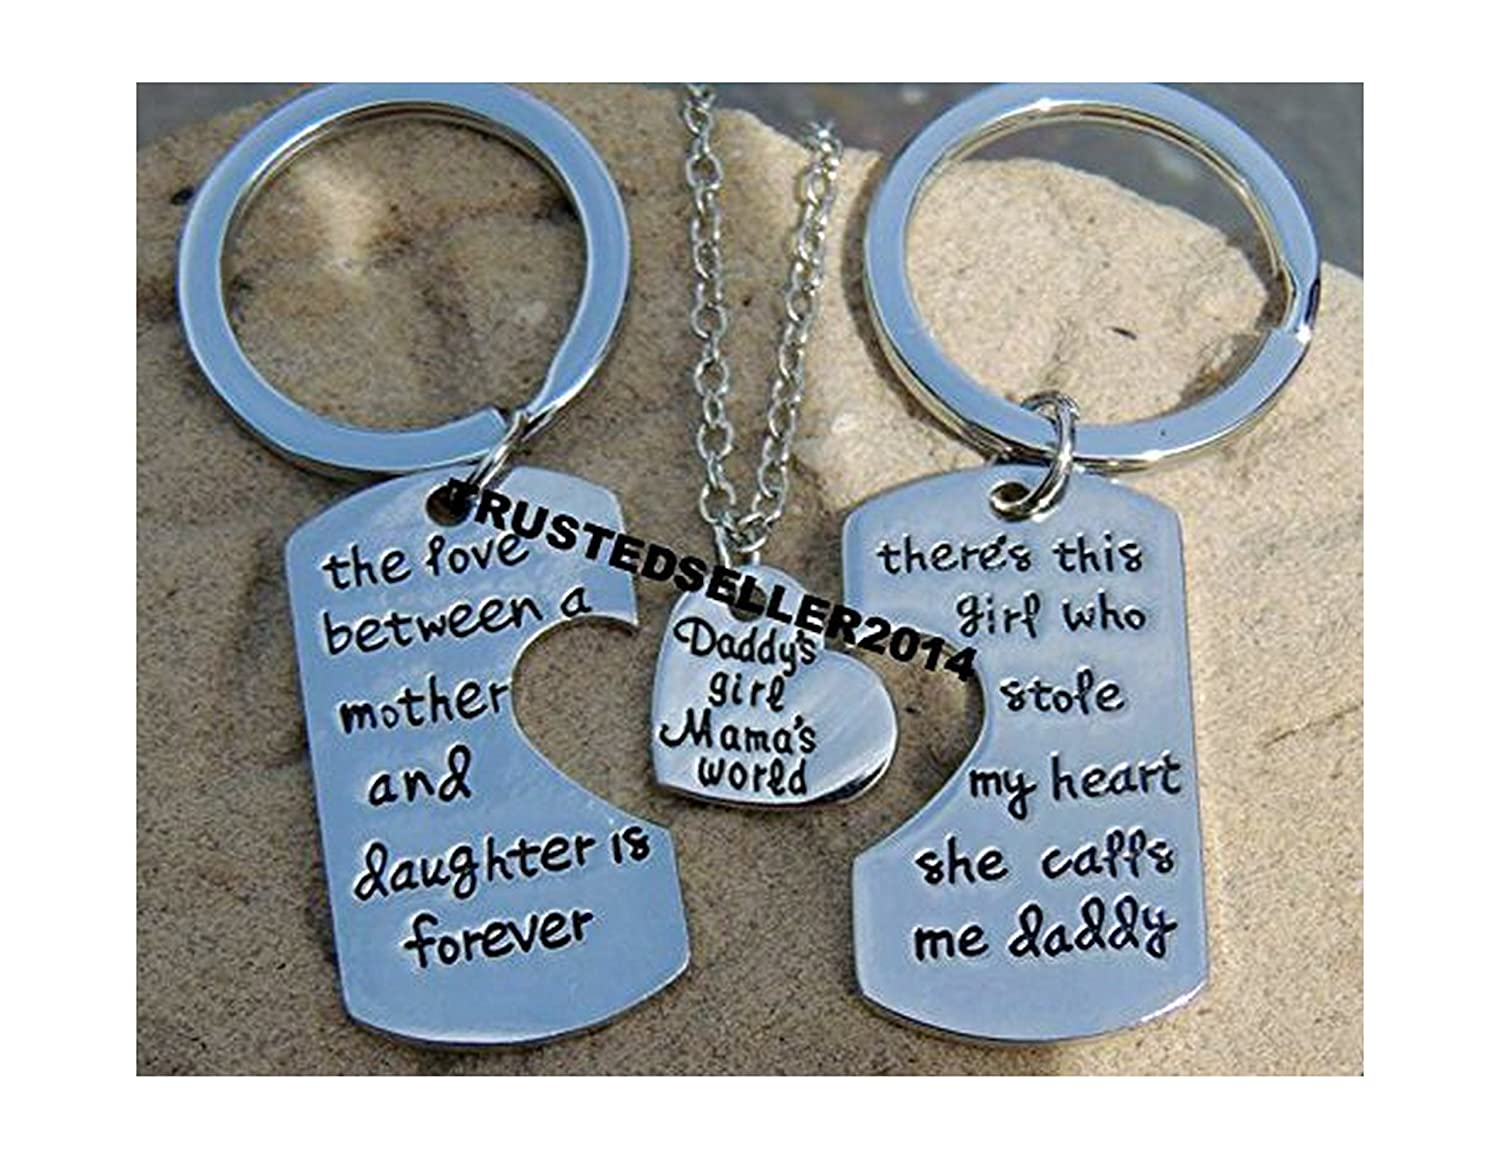 Amazon.com  Daddys dad girl Mamas World set girl kids Fathers day Mothers  day stole heart 3 keychain pendant necklace  Jewelry 2262e3477e